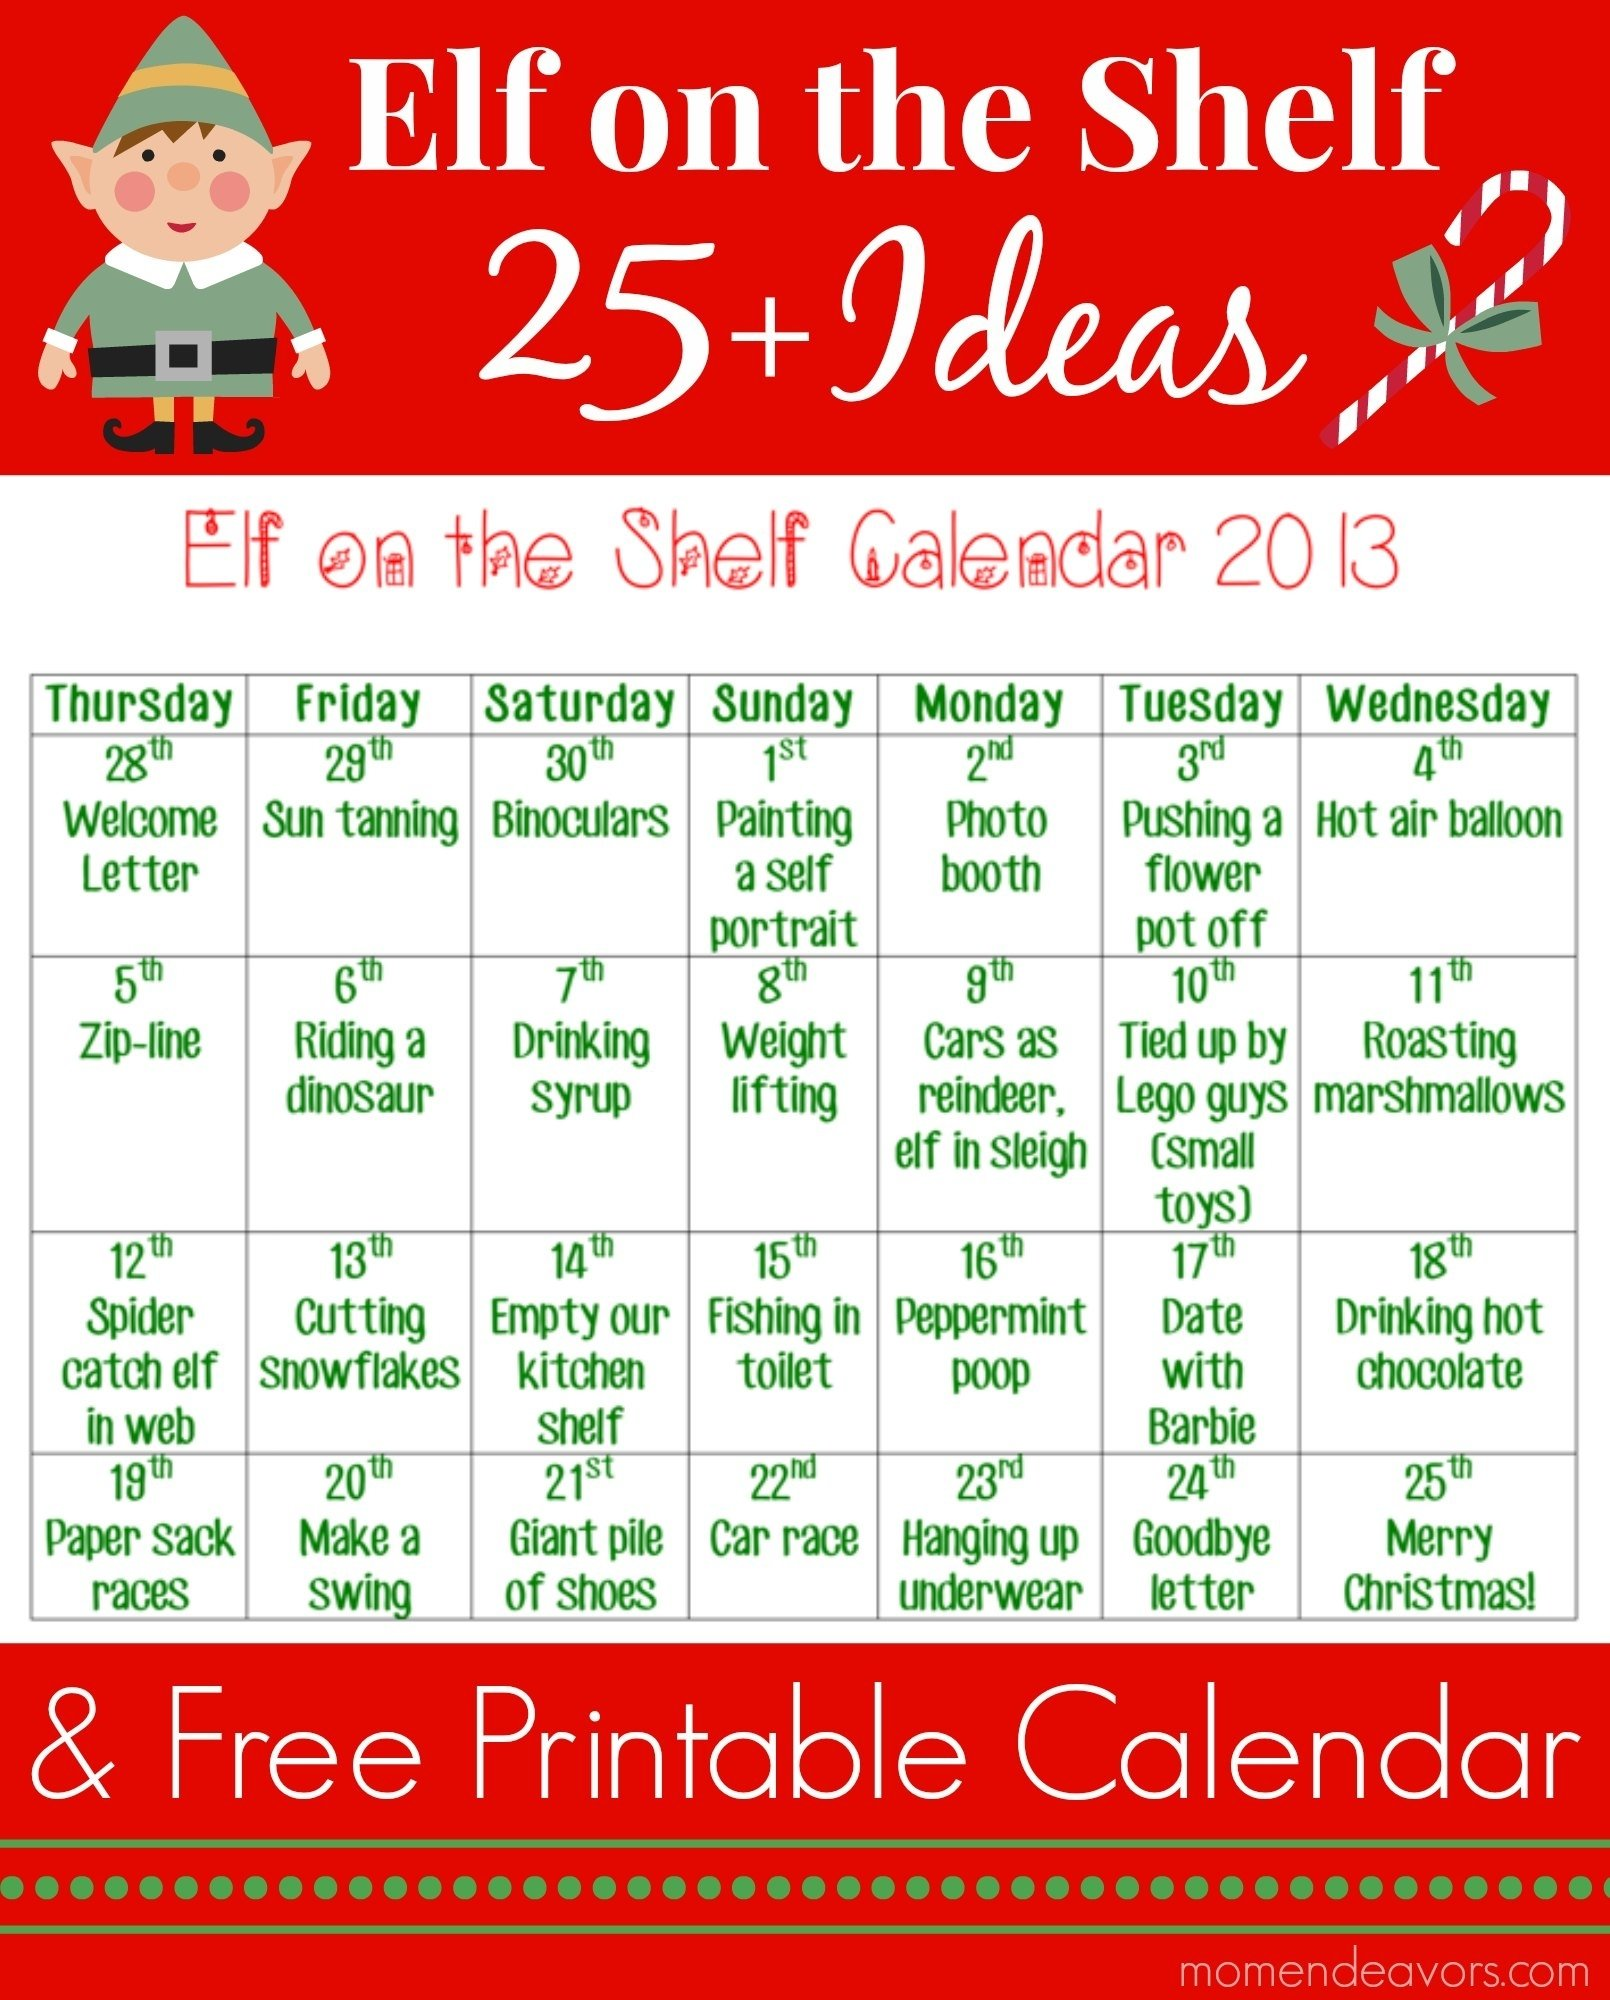 25+ elf on the shelf ideas with printable calendar (+ an